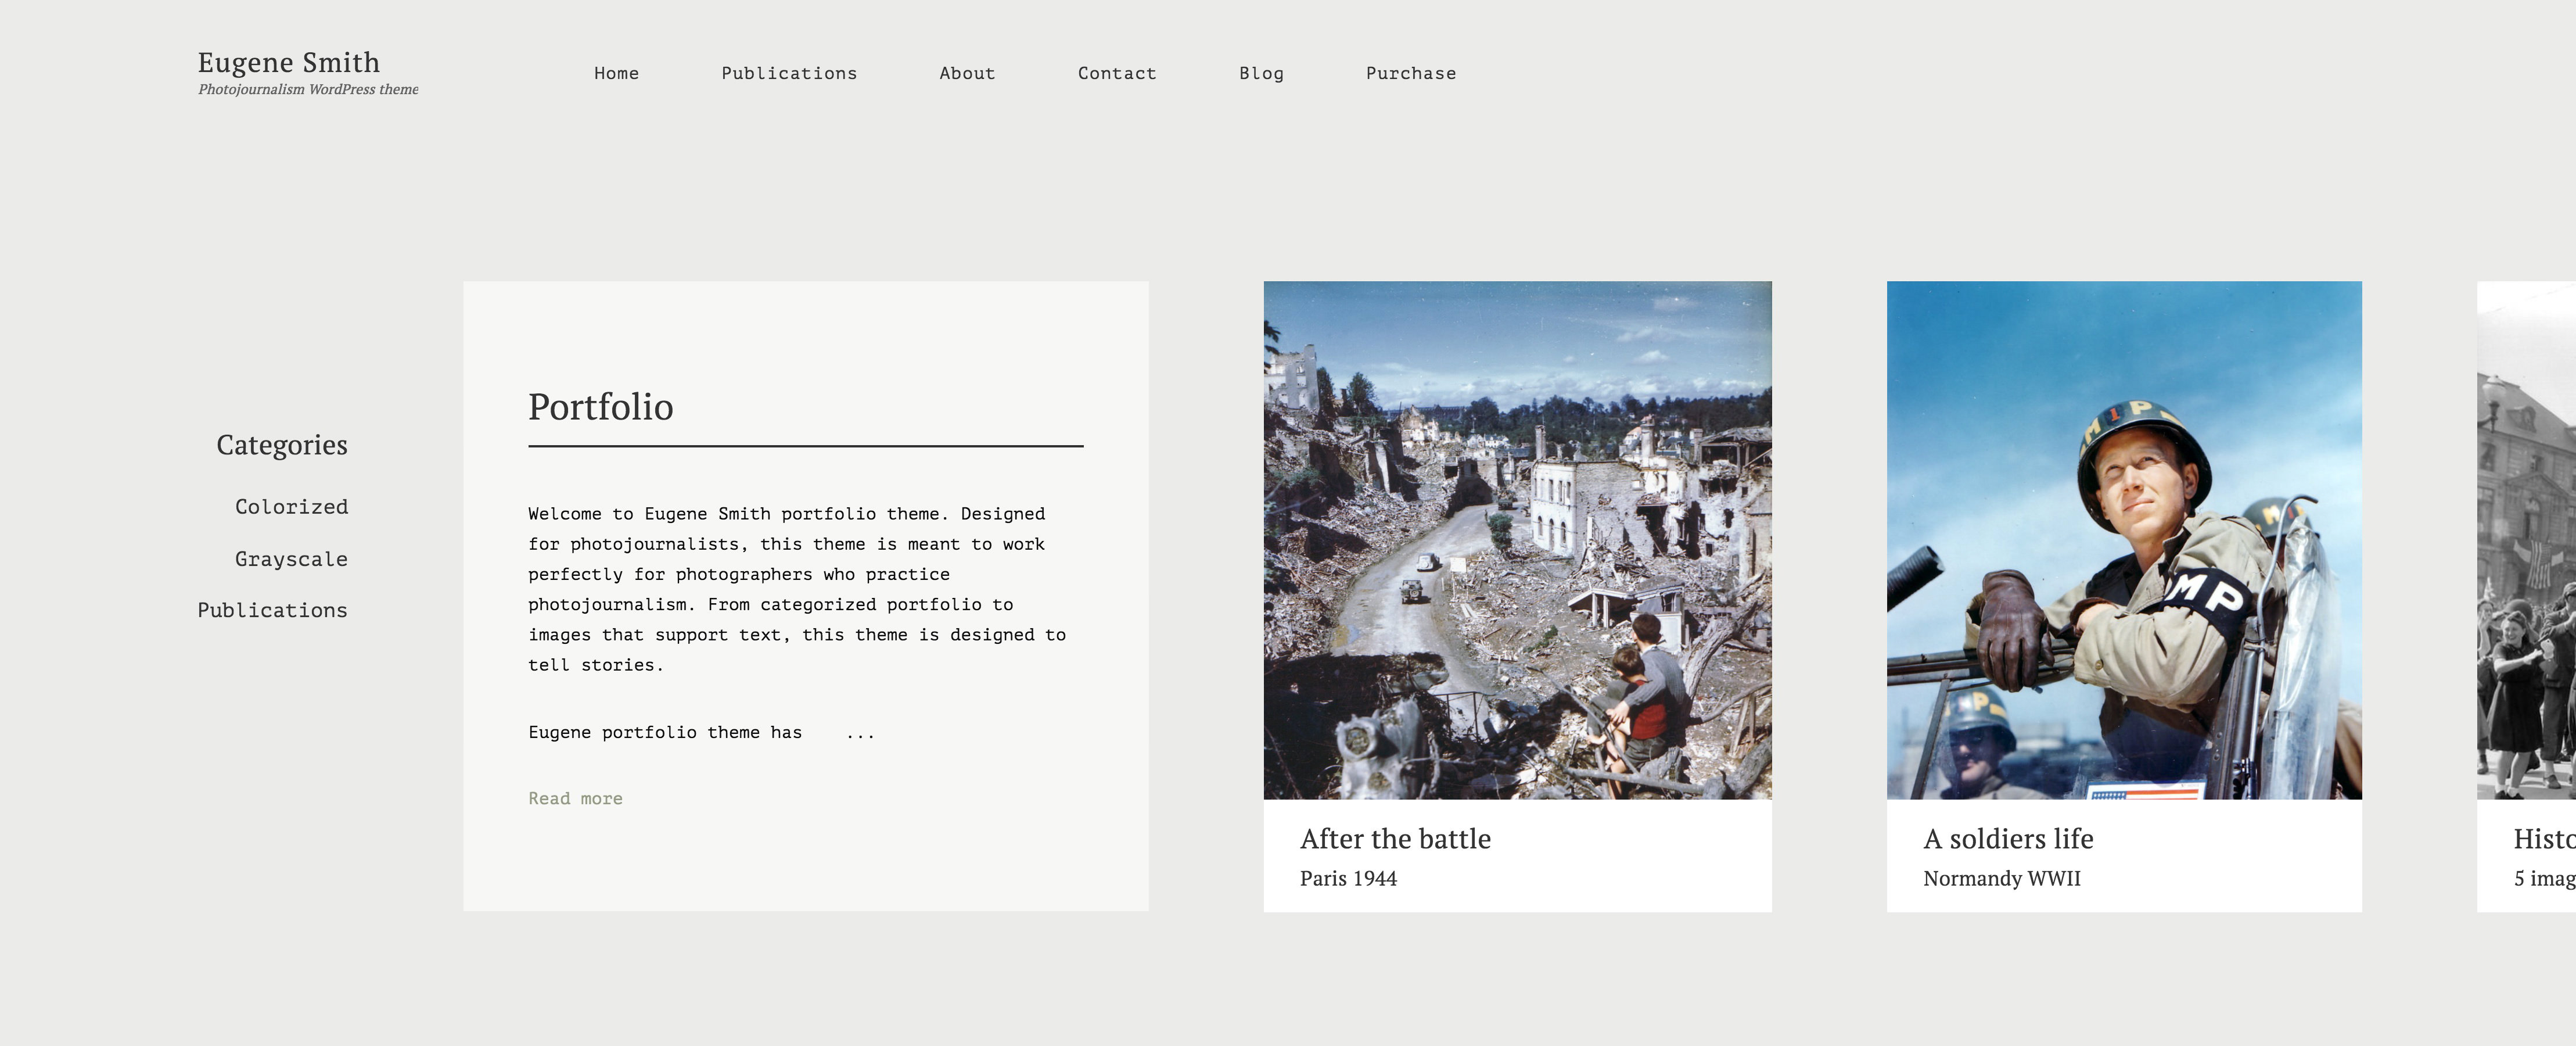 Eugene photojournalism theme -horizontal portfolio with categories.